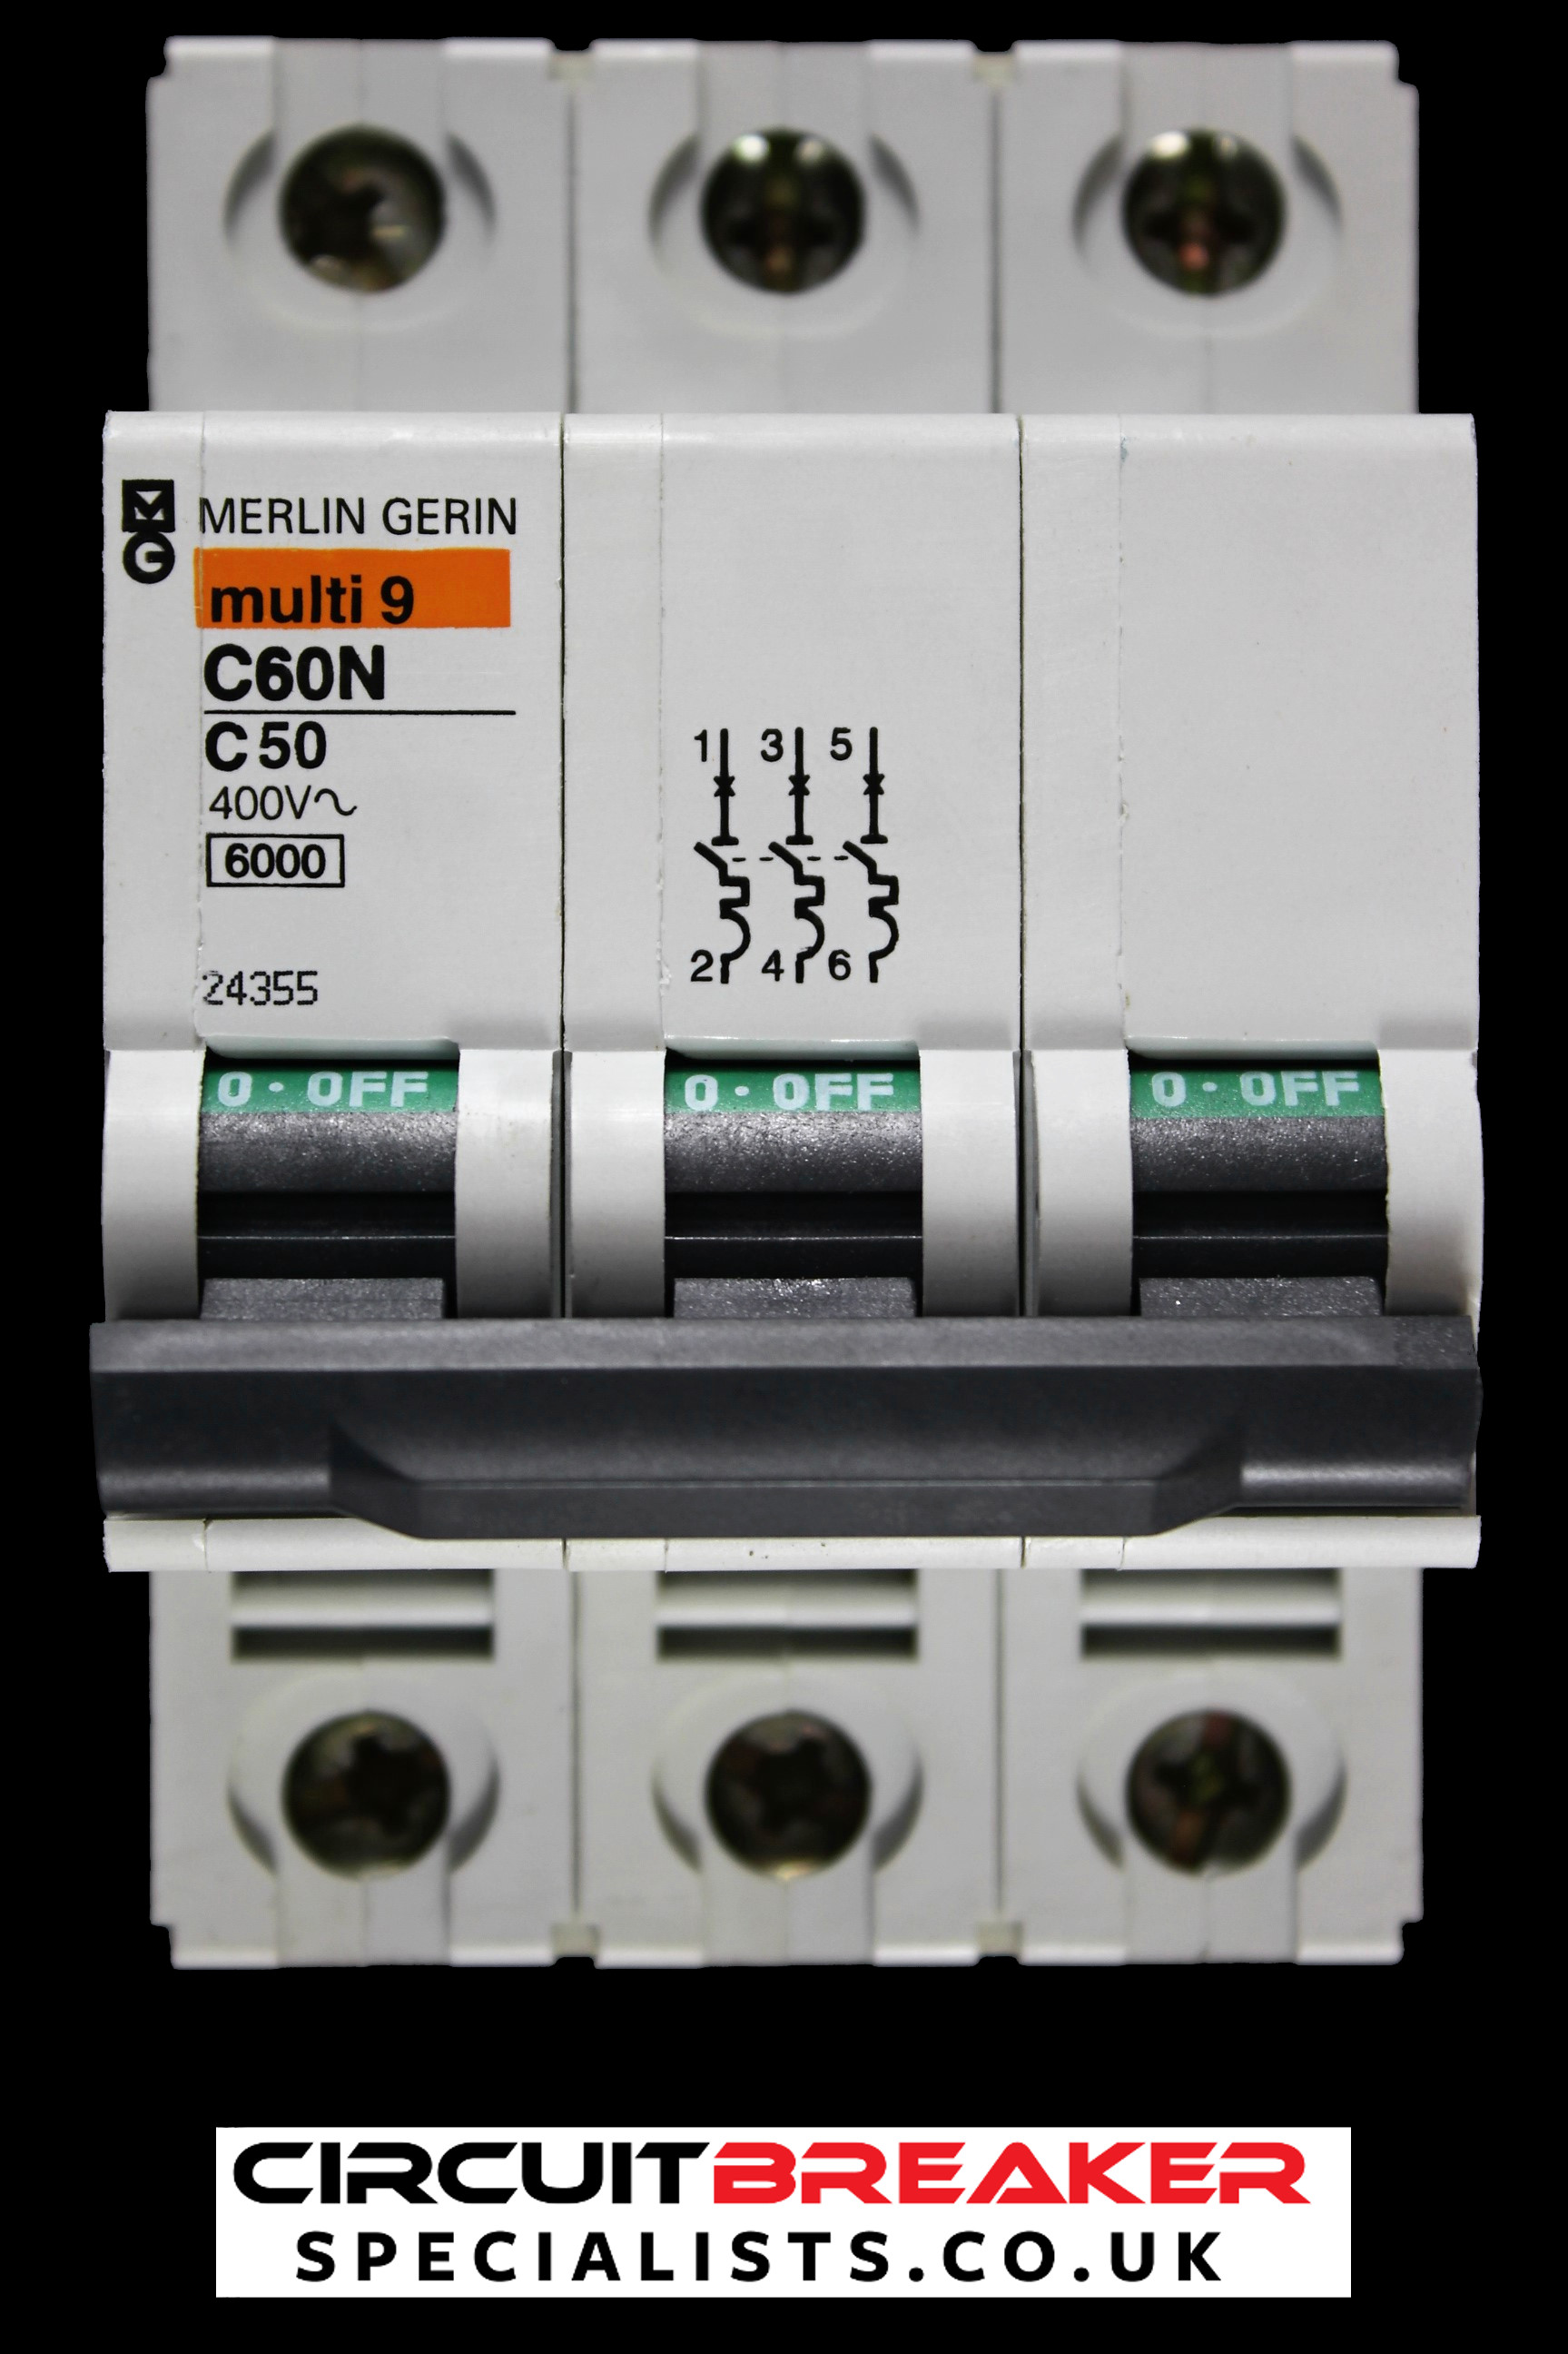 MERLIN 50 AMP TYPE C 6kA TRIPLE POLE MCB CIRCUIT BREAKER MULTI9 C60N 24355